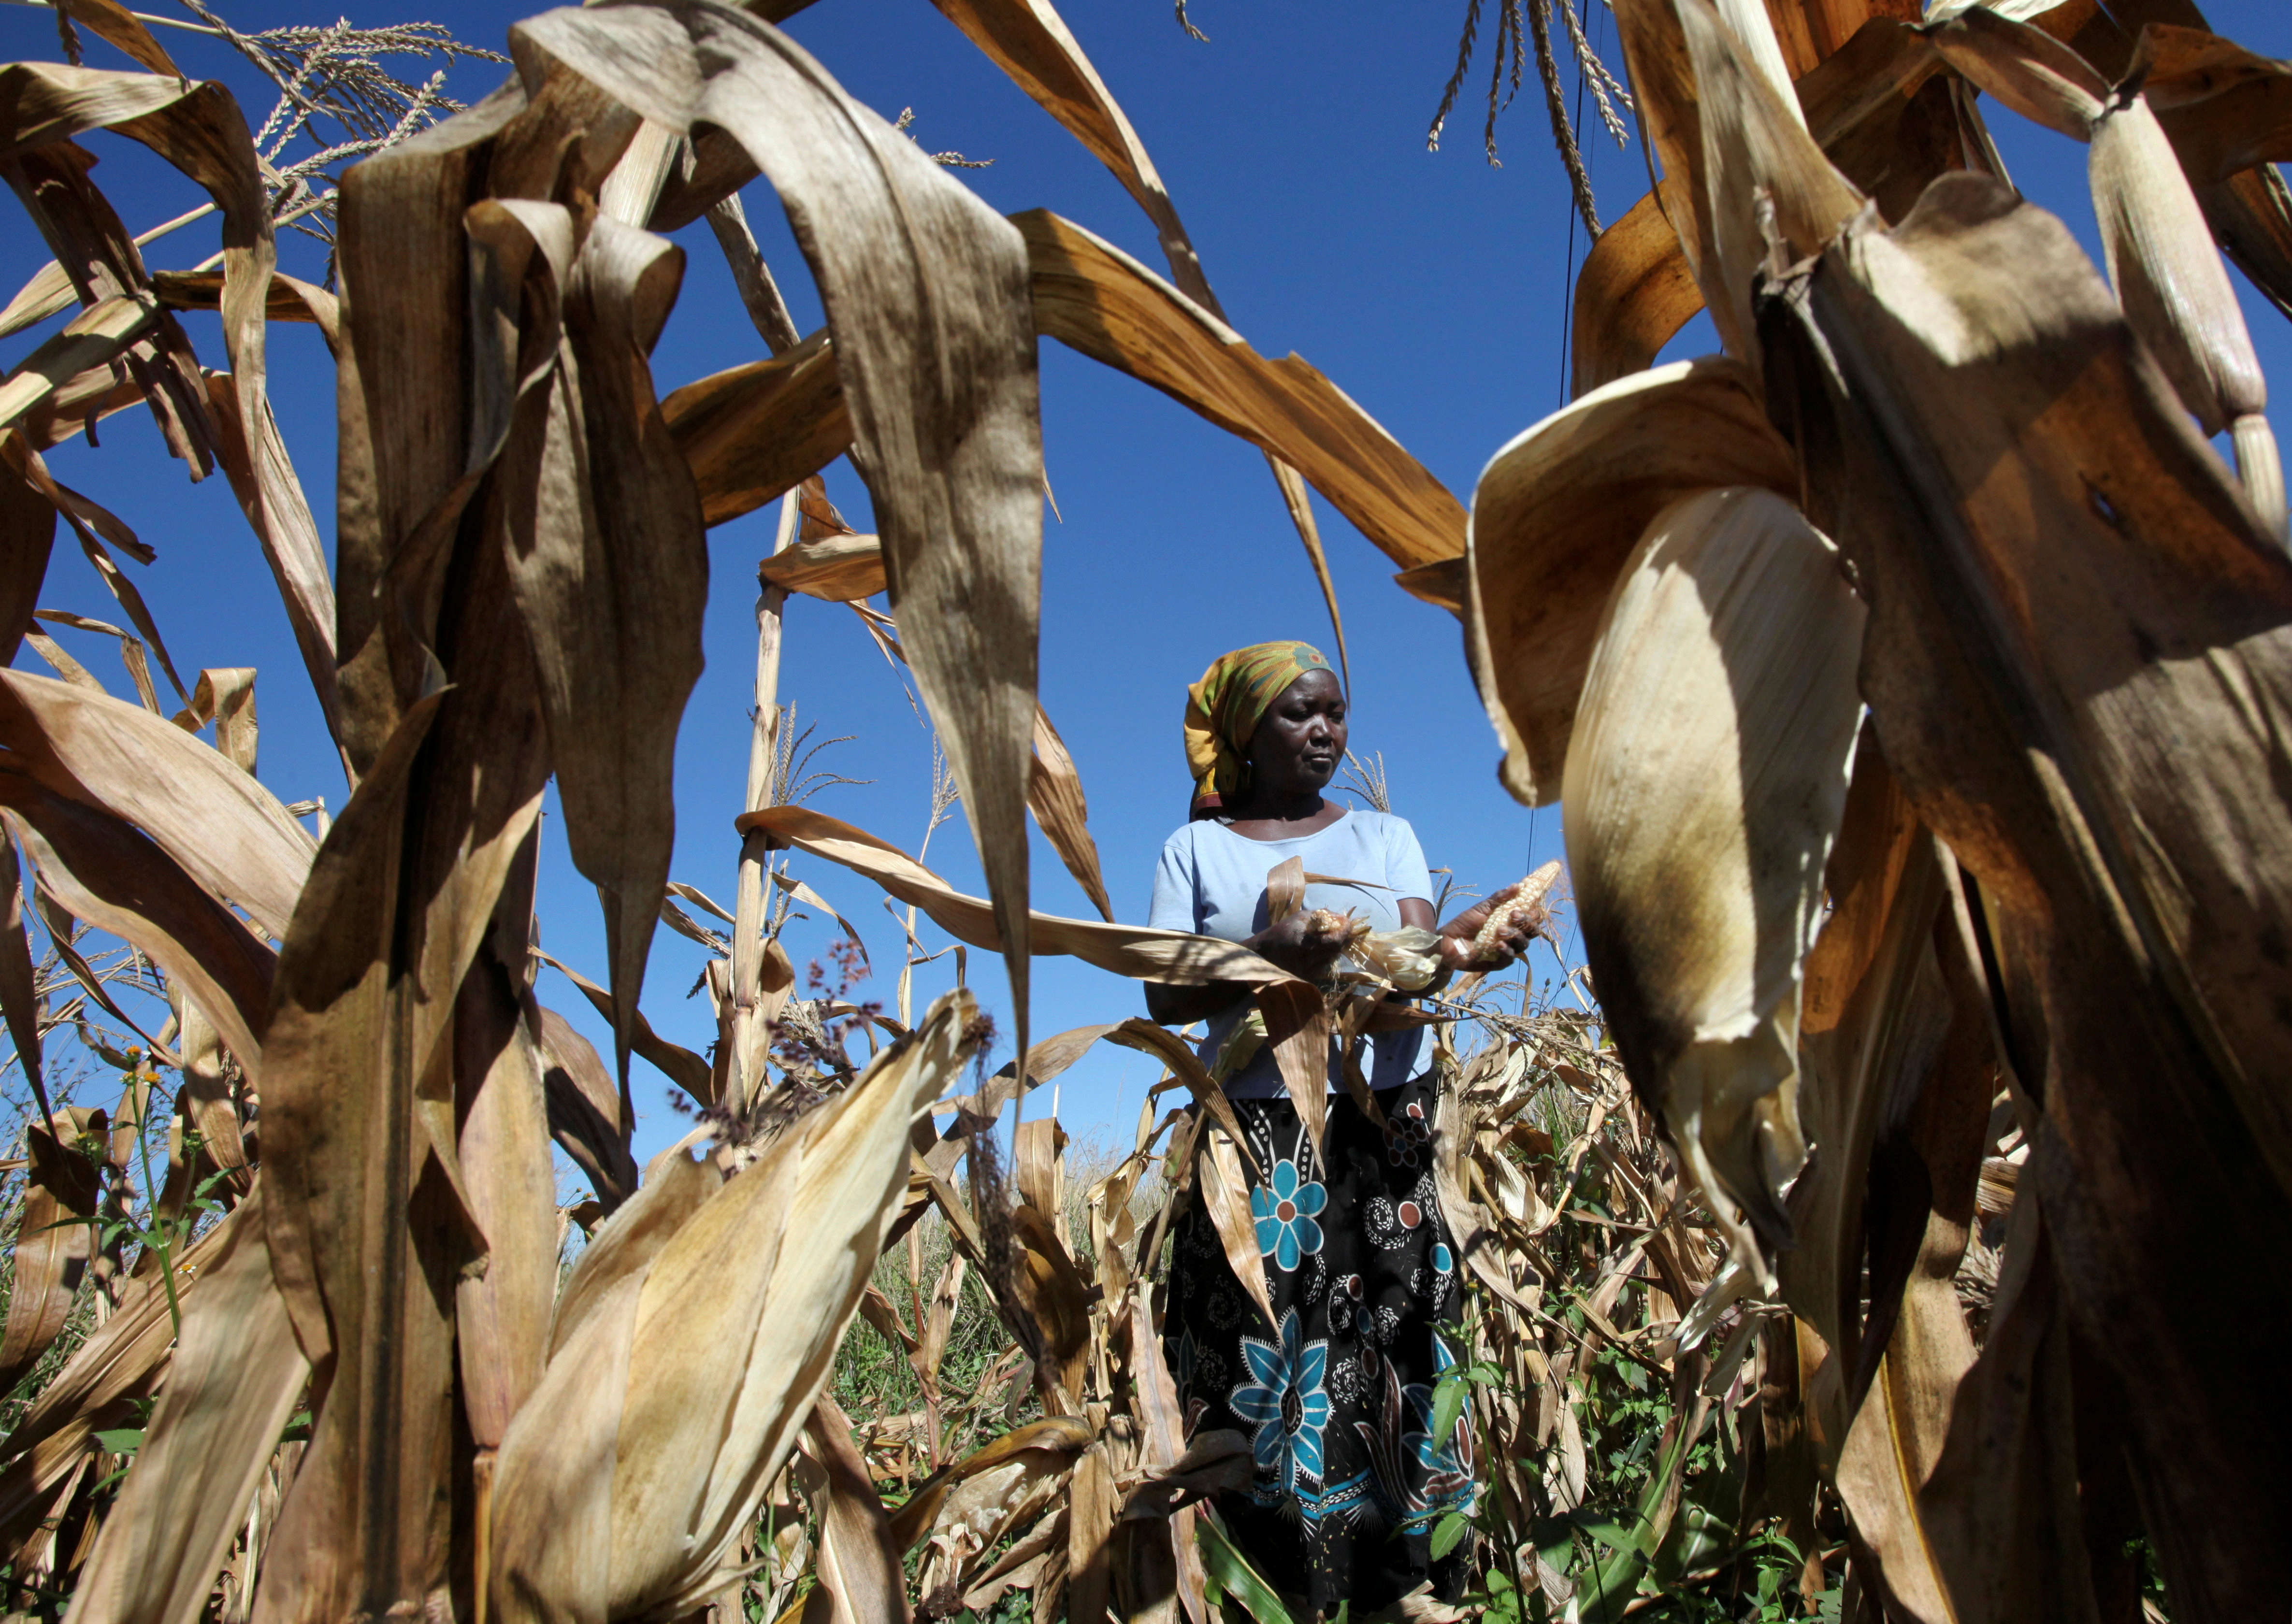 Subsistence farmer Joice Chimedza harvests maize on her small plot in Norton, a farming area outside Zimbabwe's capital Harare, May 10, 2016.